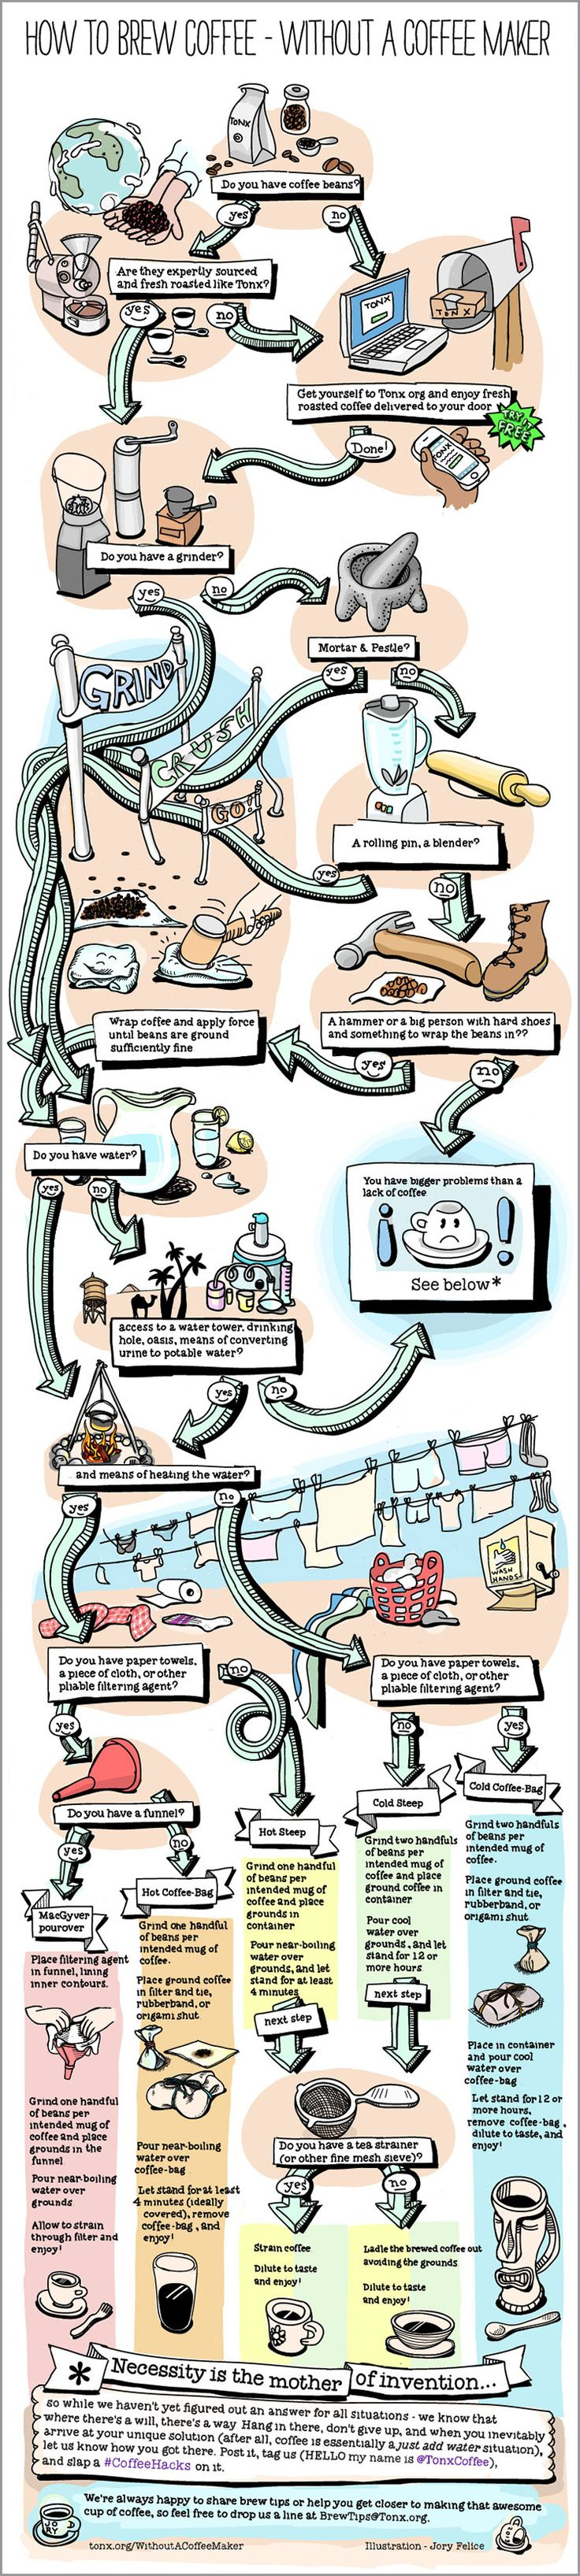 How to Brew #Coffee Without a #Coffee_Maker. ps. I'm not with the company who made it. I just think the infographic is amusing.